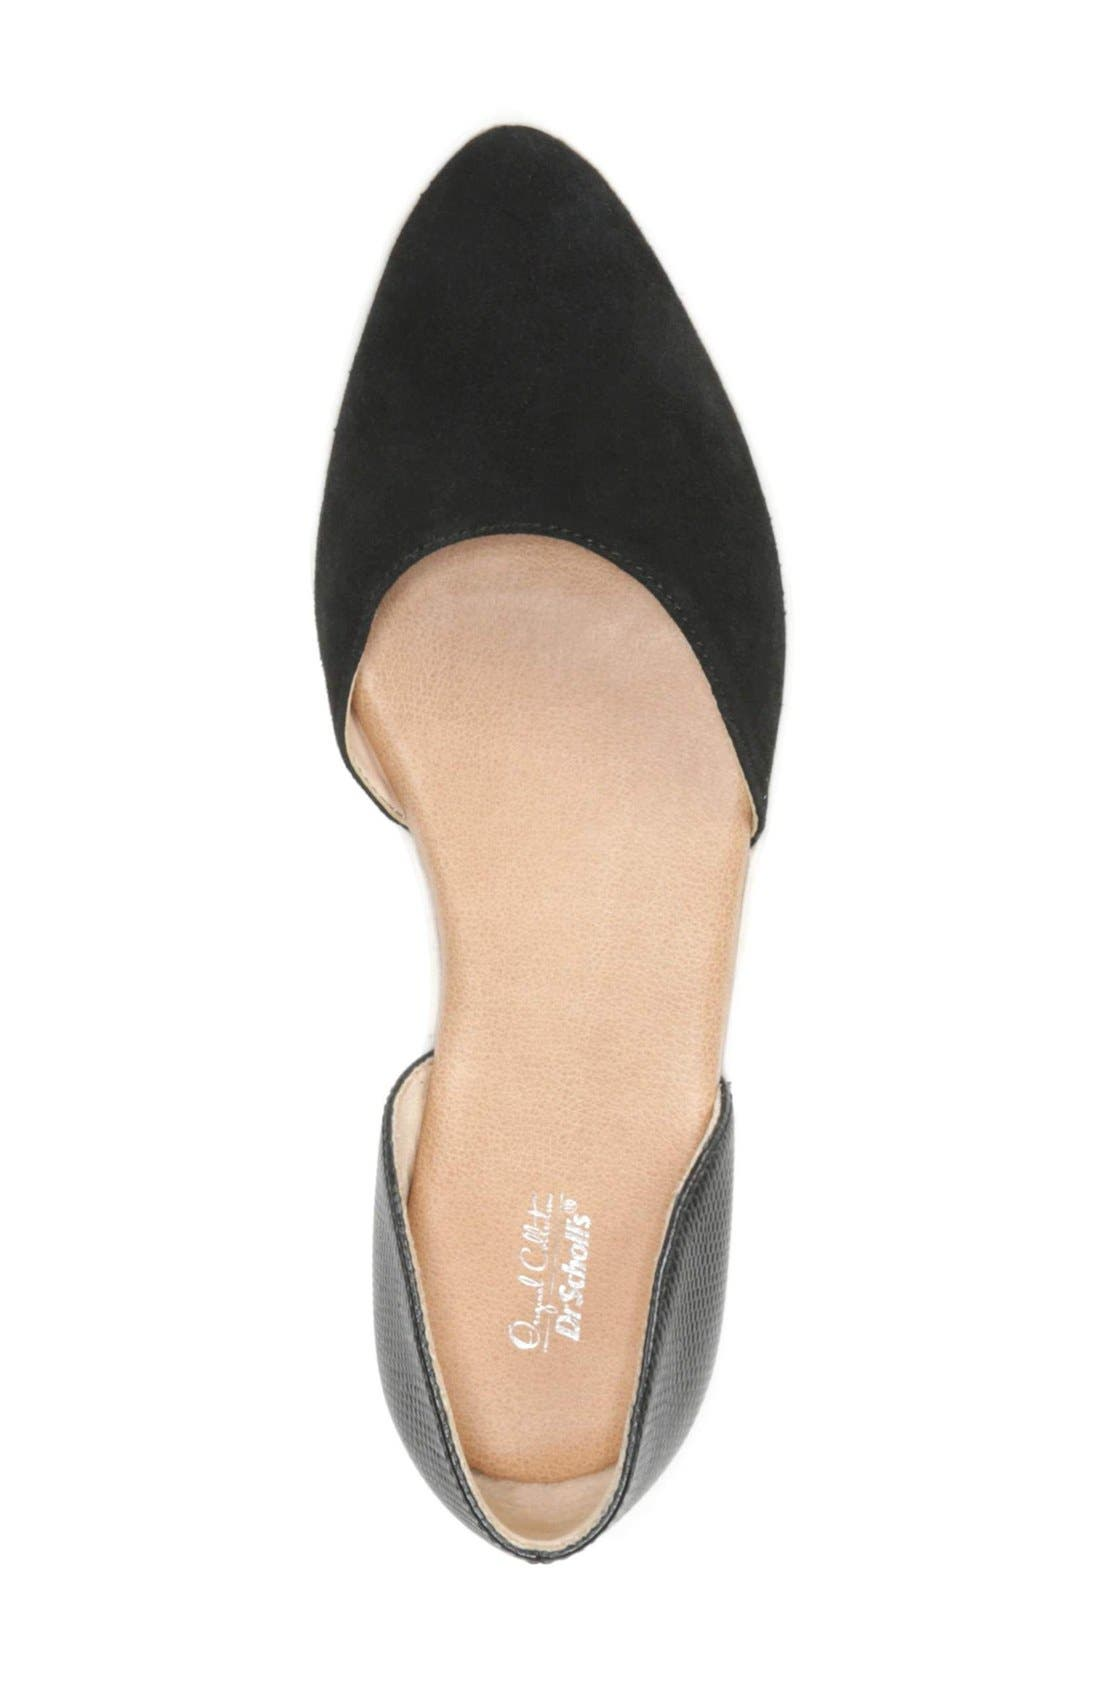 Vienna II d'Orsay Flat,                             Alternate thumbnail 3, color,                             Black Suede/ Leather